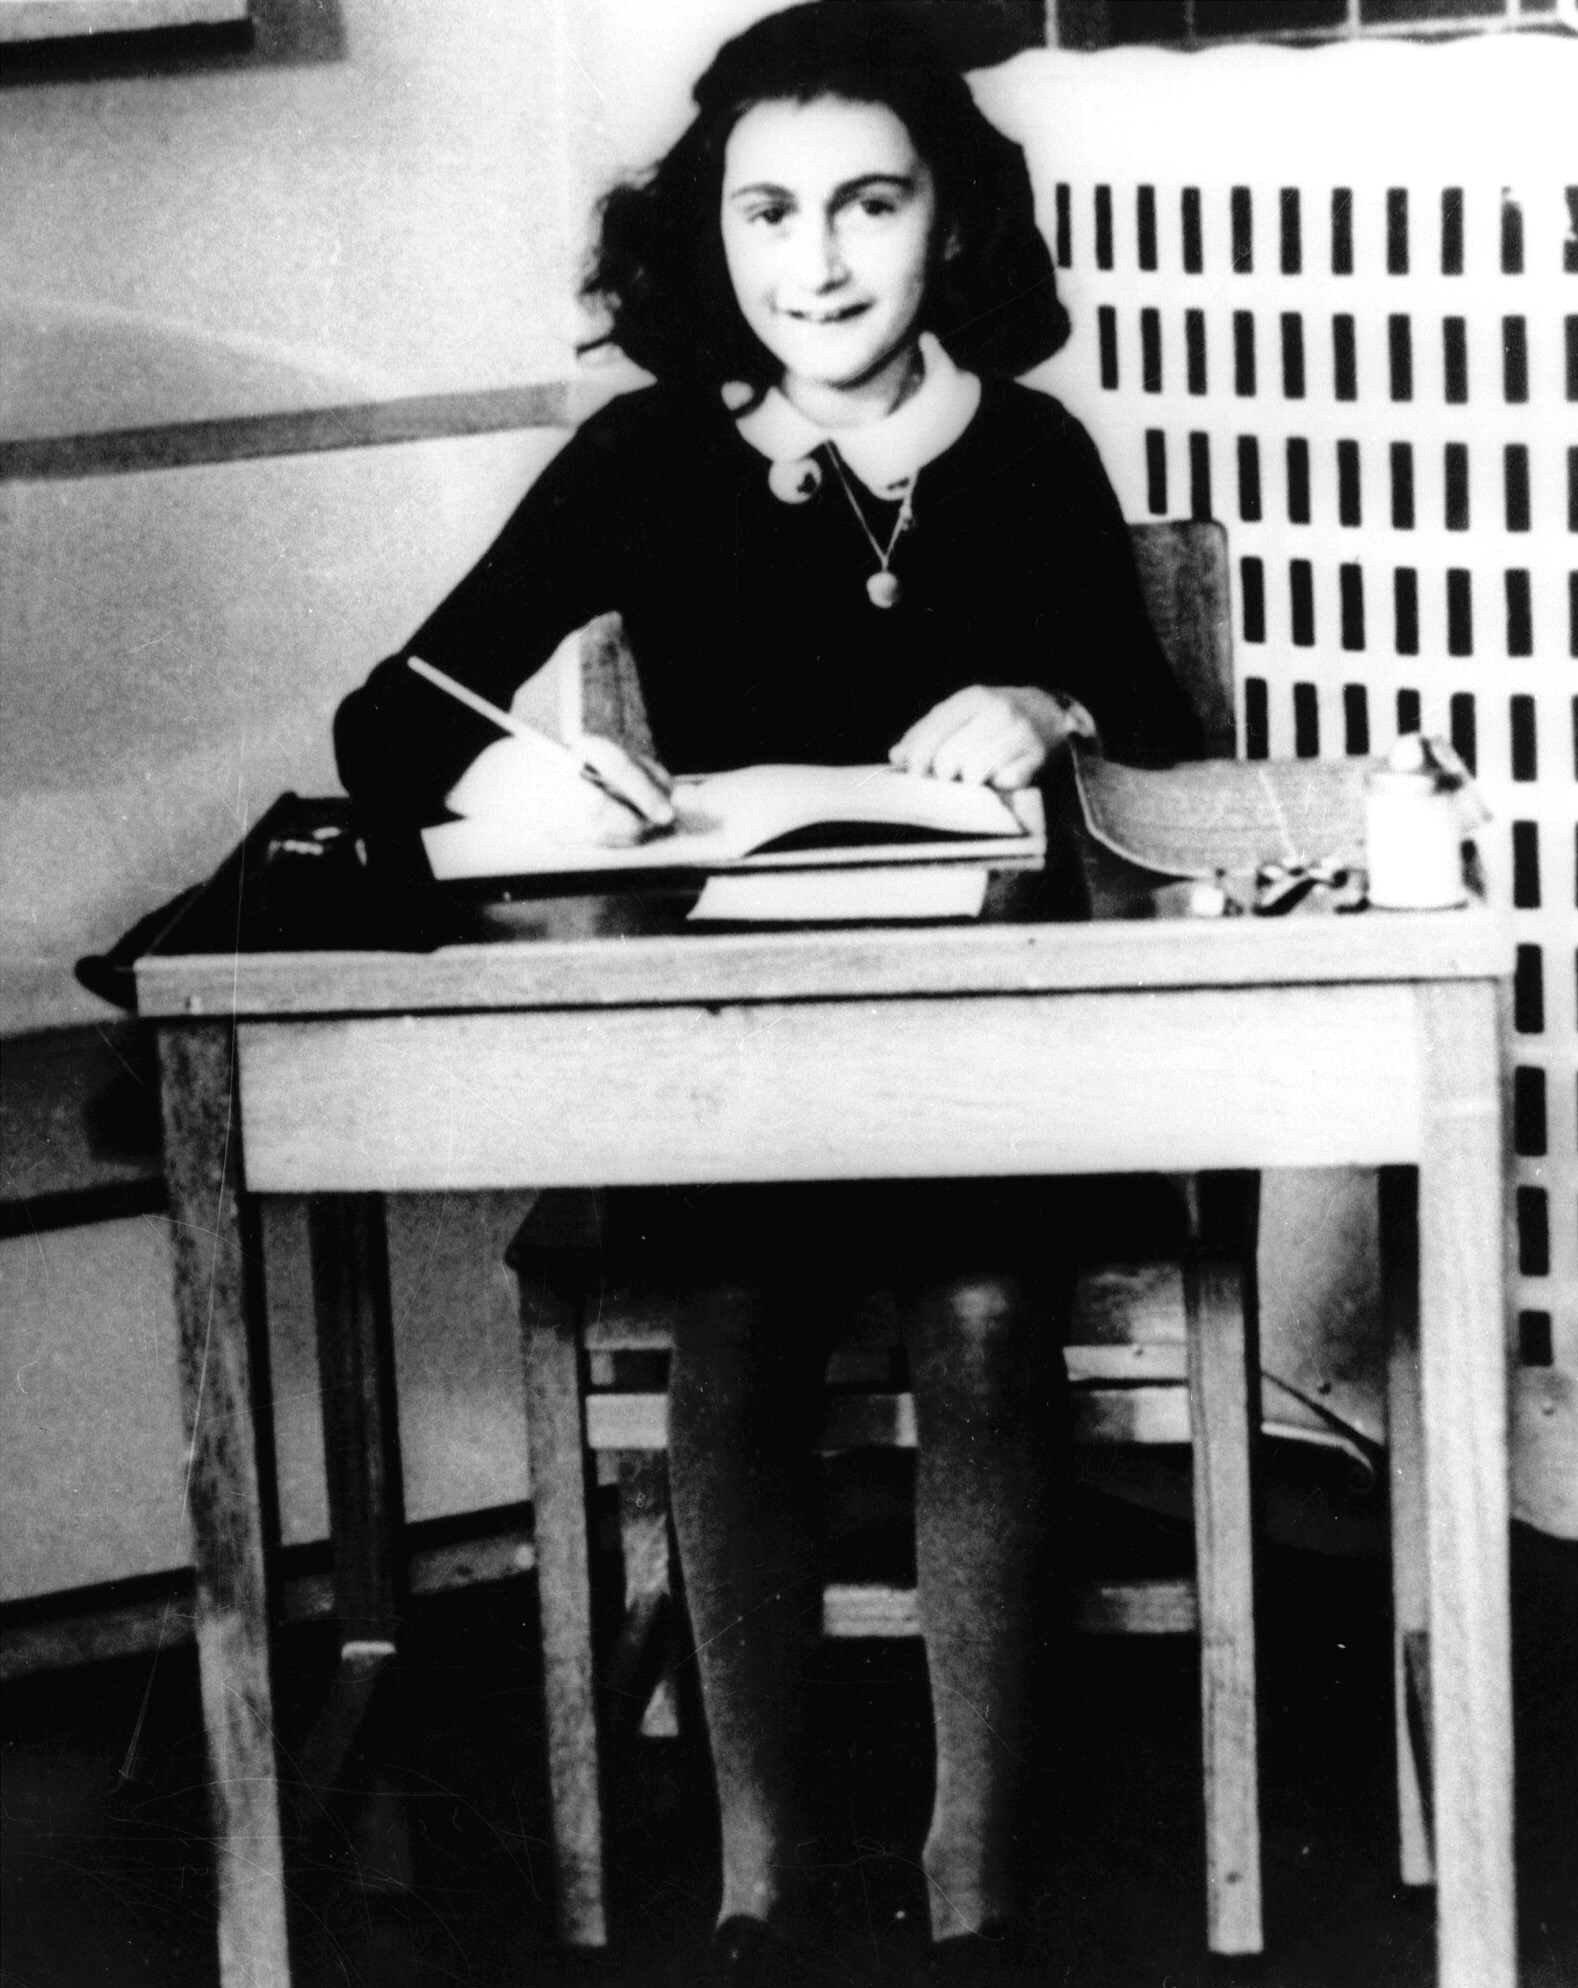 This is an undated photo of Anne Frank, the young Jewish girl who, with her family, hid from the Nazis in Amsterdam, Netherlands, during World War II.